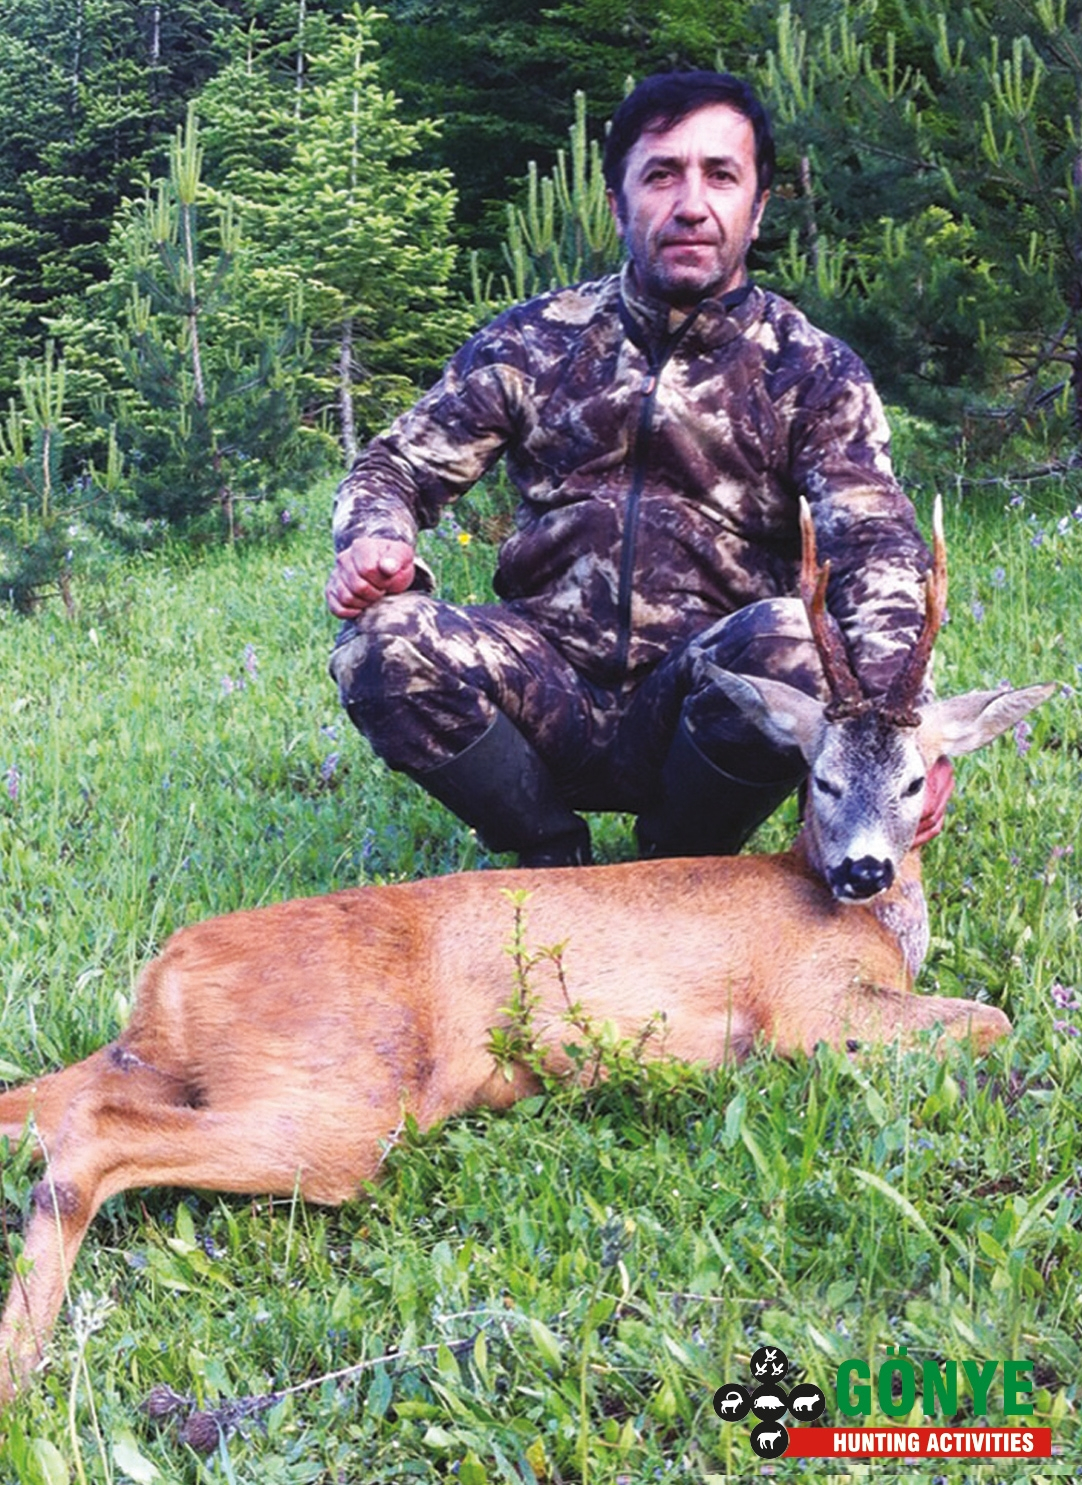 Chevreuil D Anatolie / Chasse / Gönye Hunting Activities Intended For Louisiana Deer Rut Dates